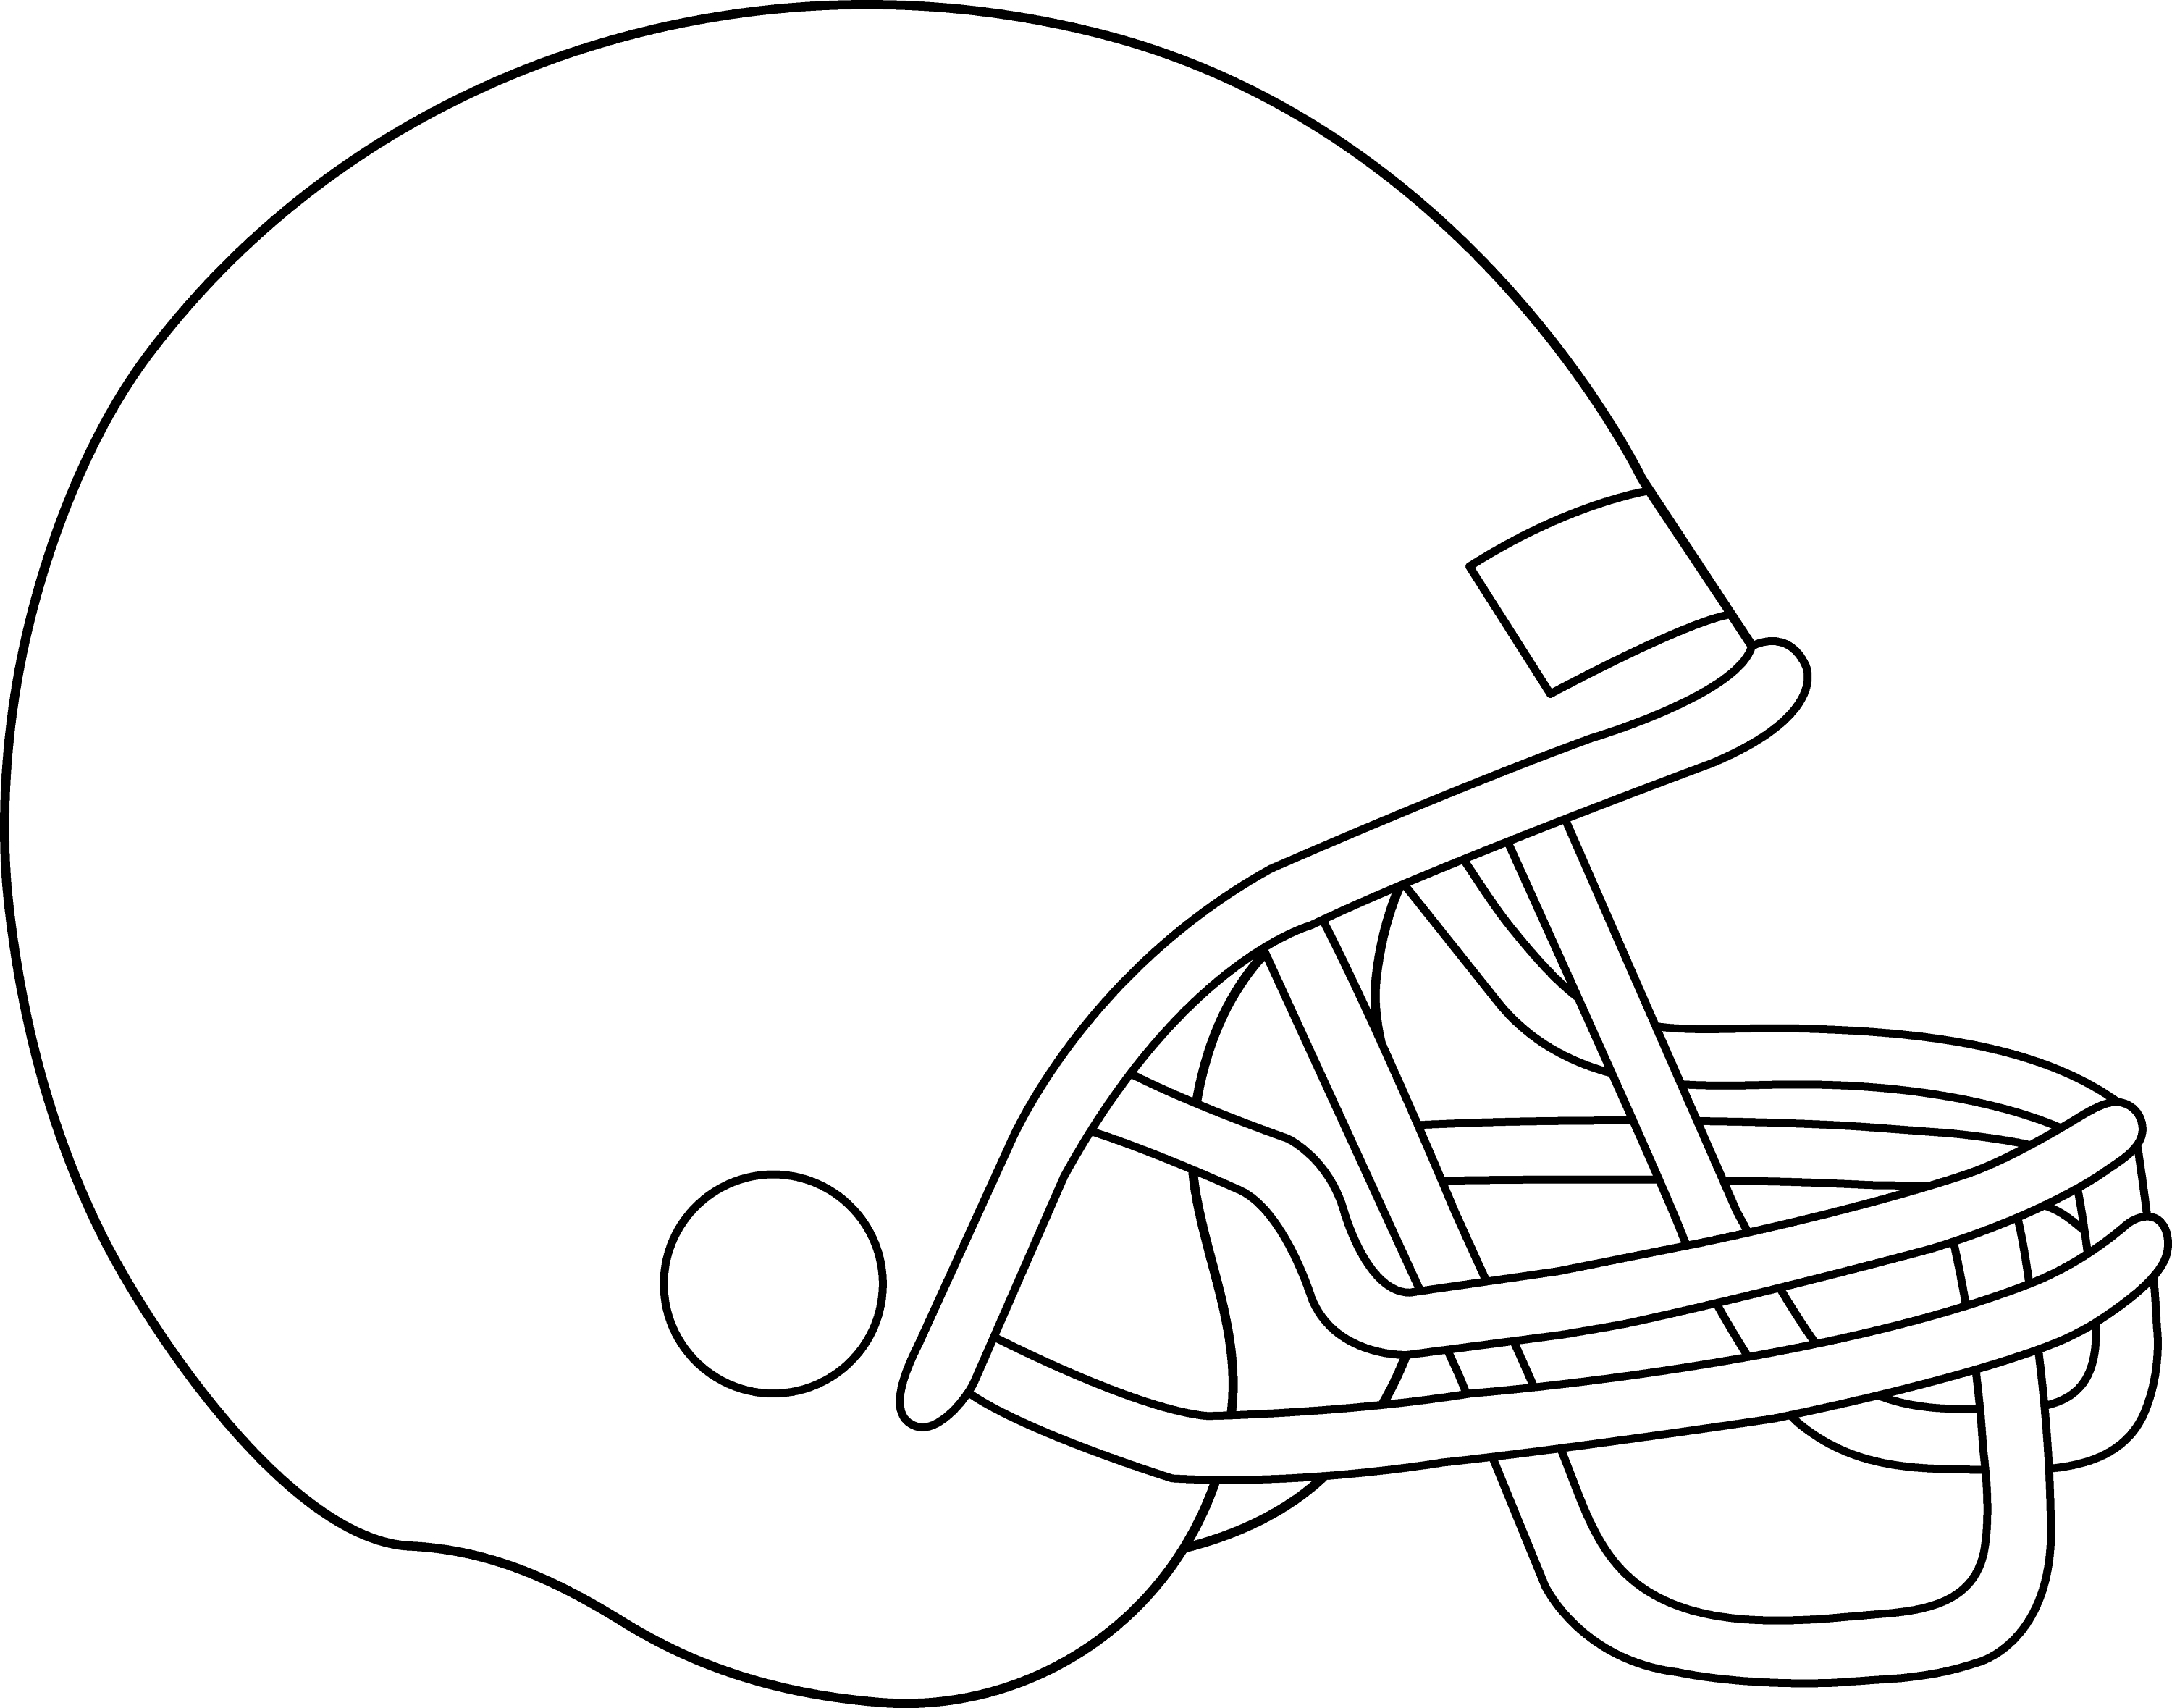 football helmets to color blank football helmet for coloring free clip art football to helmets color